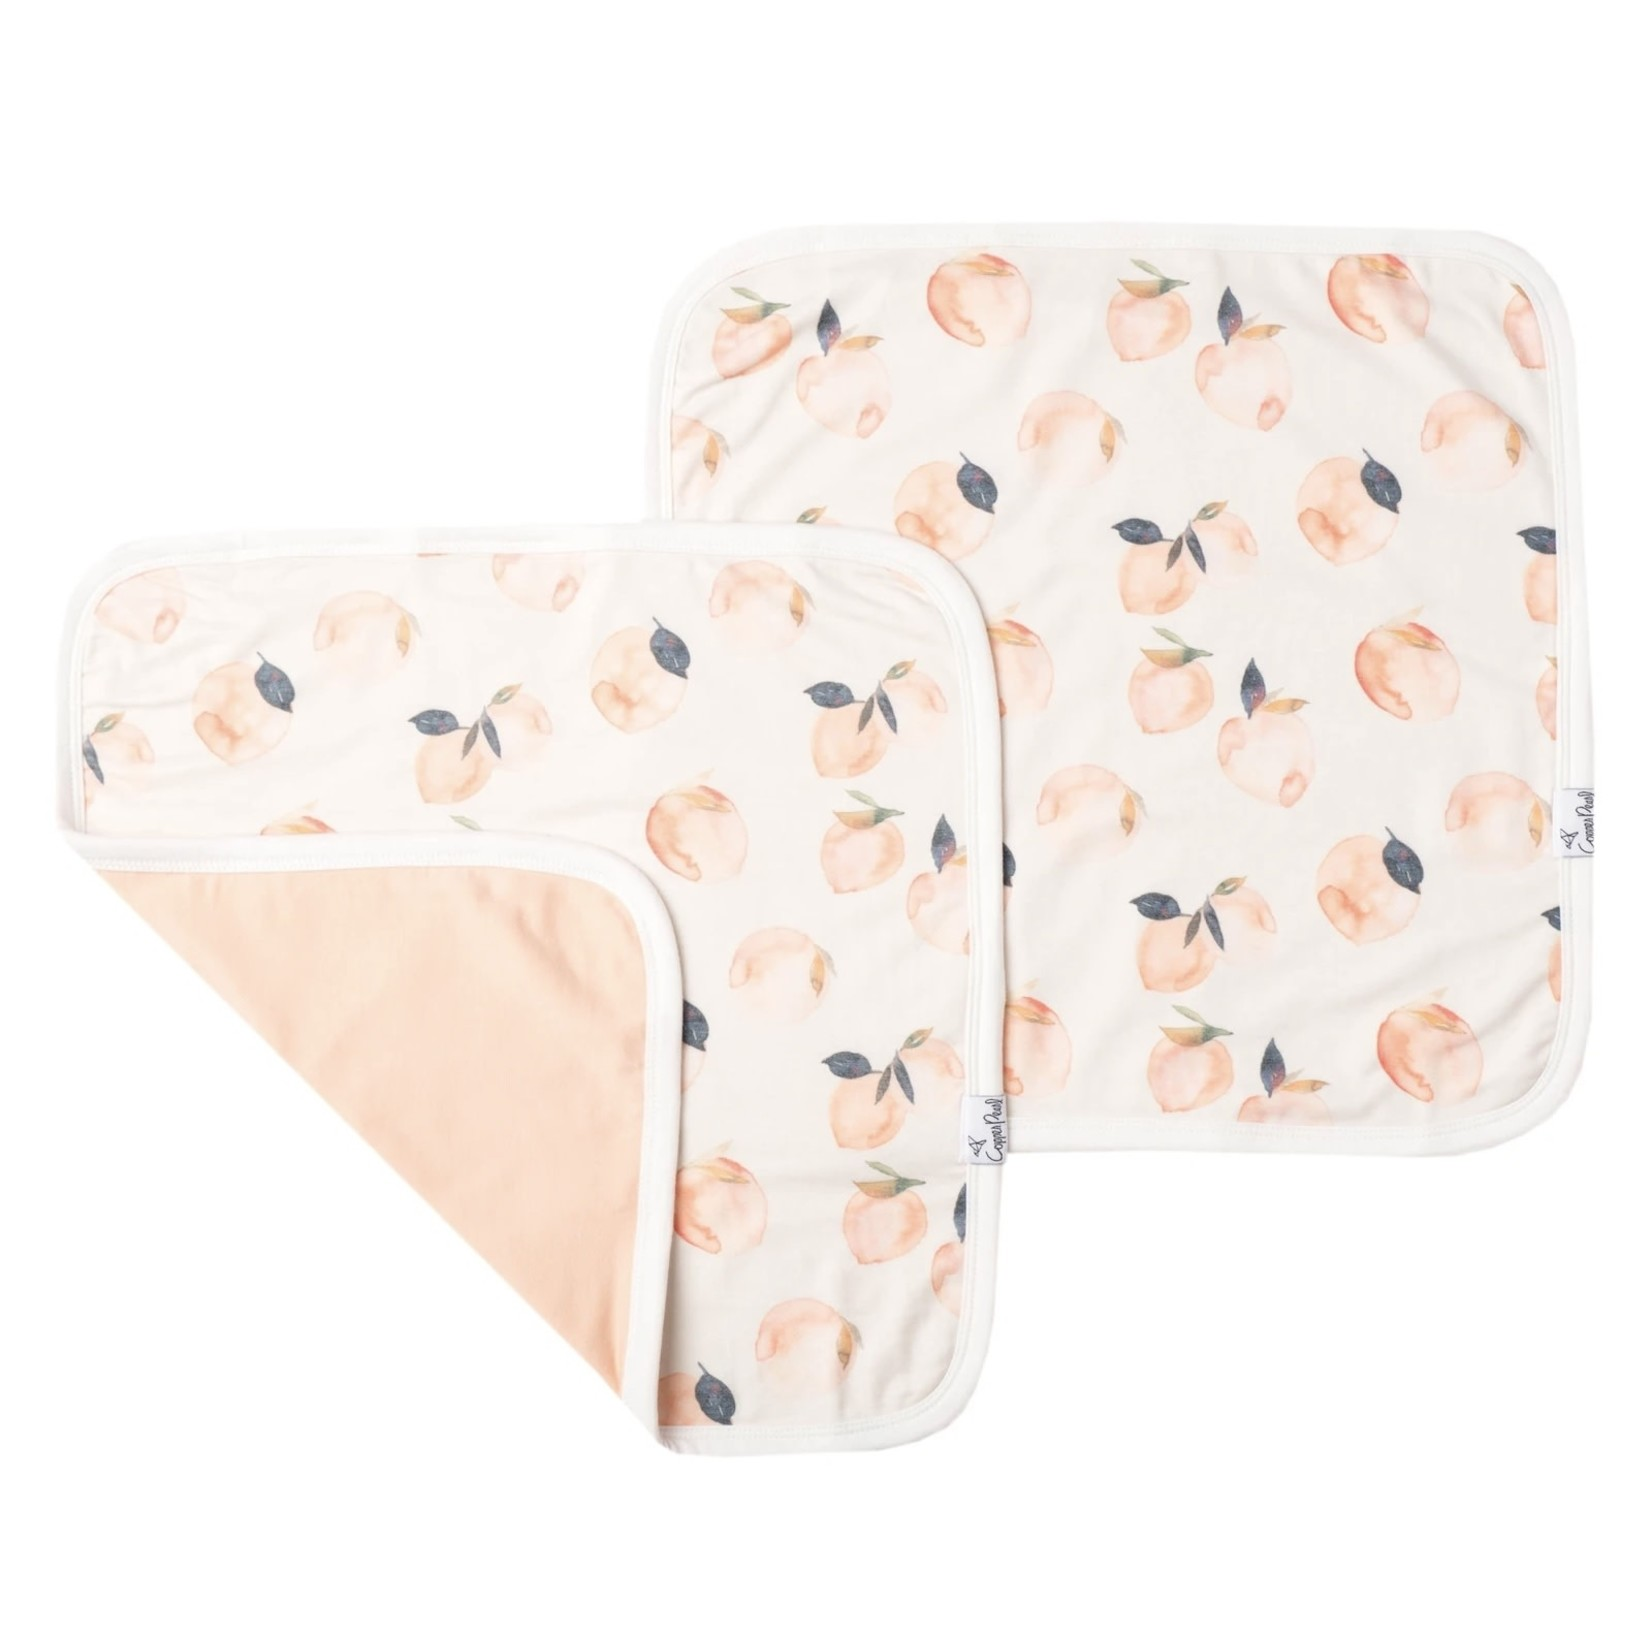 Copper Pearl Security Blanket Set of 2